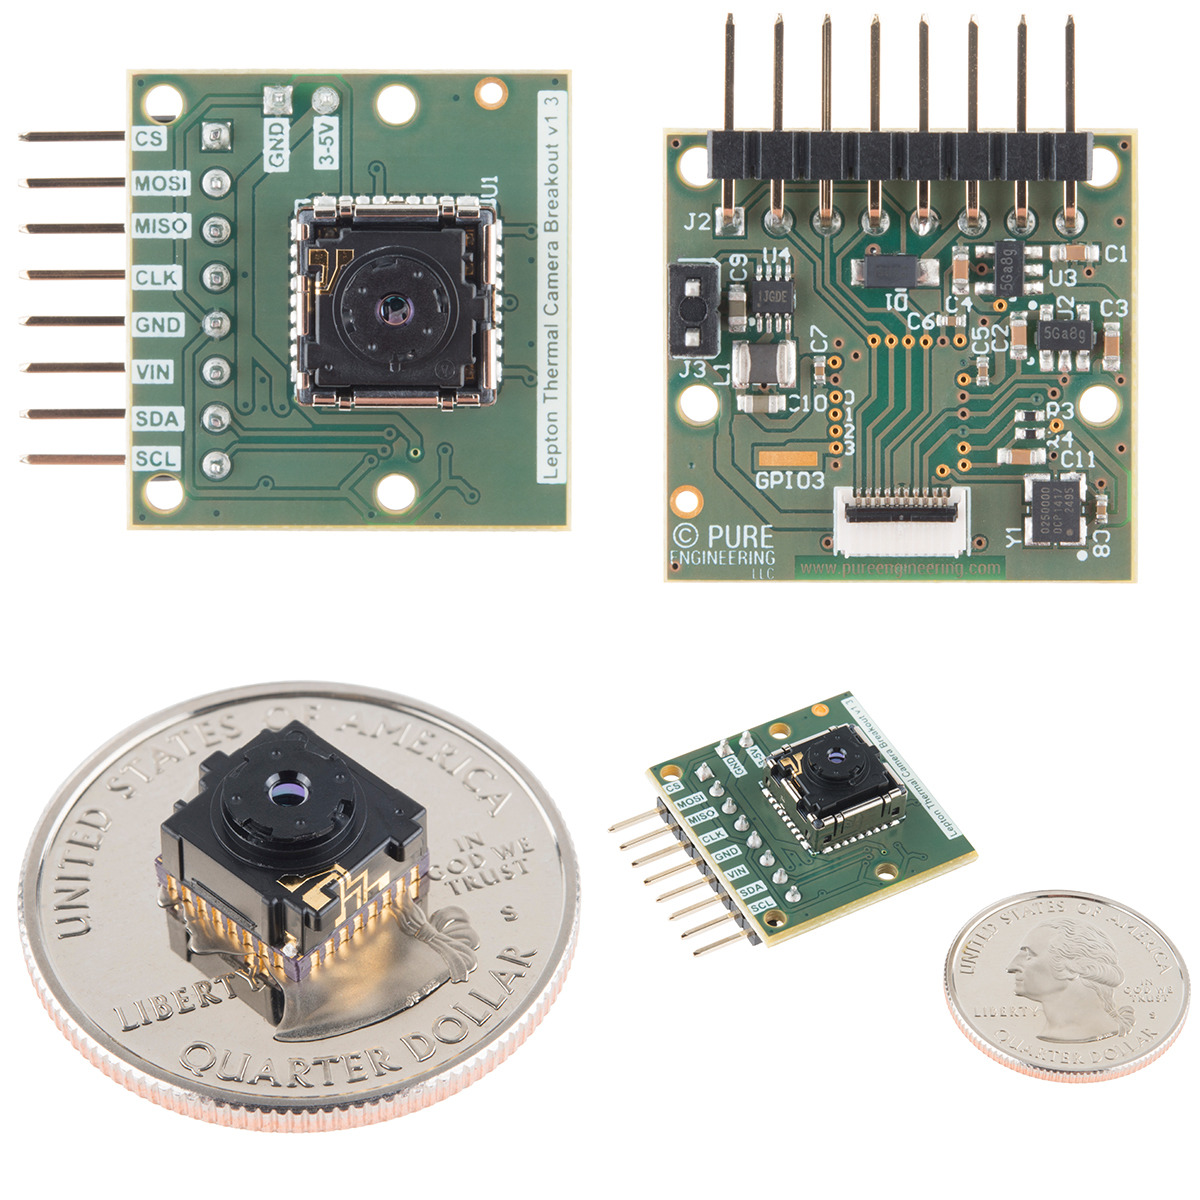 FLiR_Dev_Kit_4in1